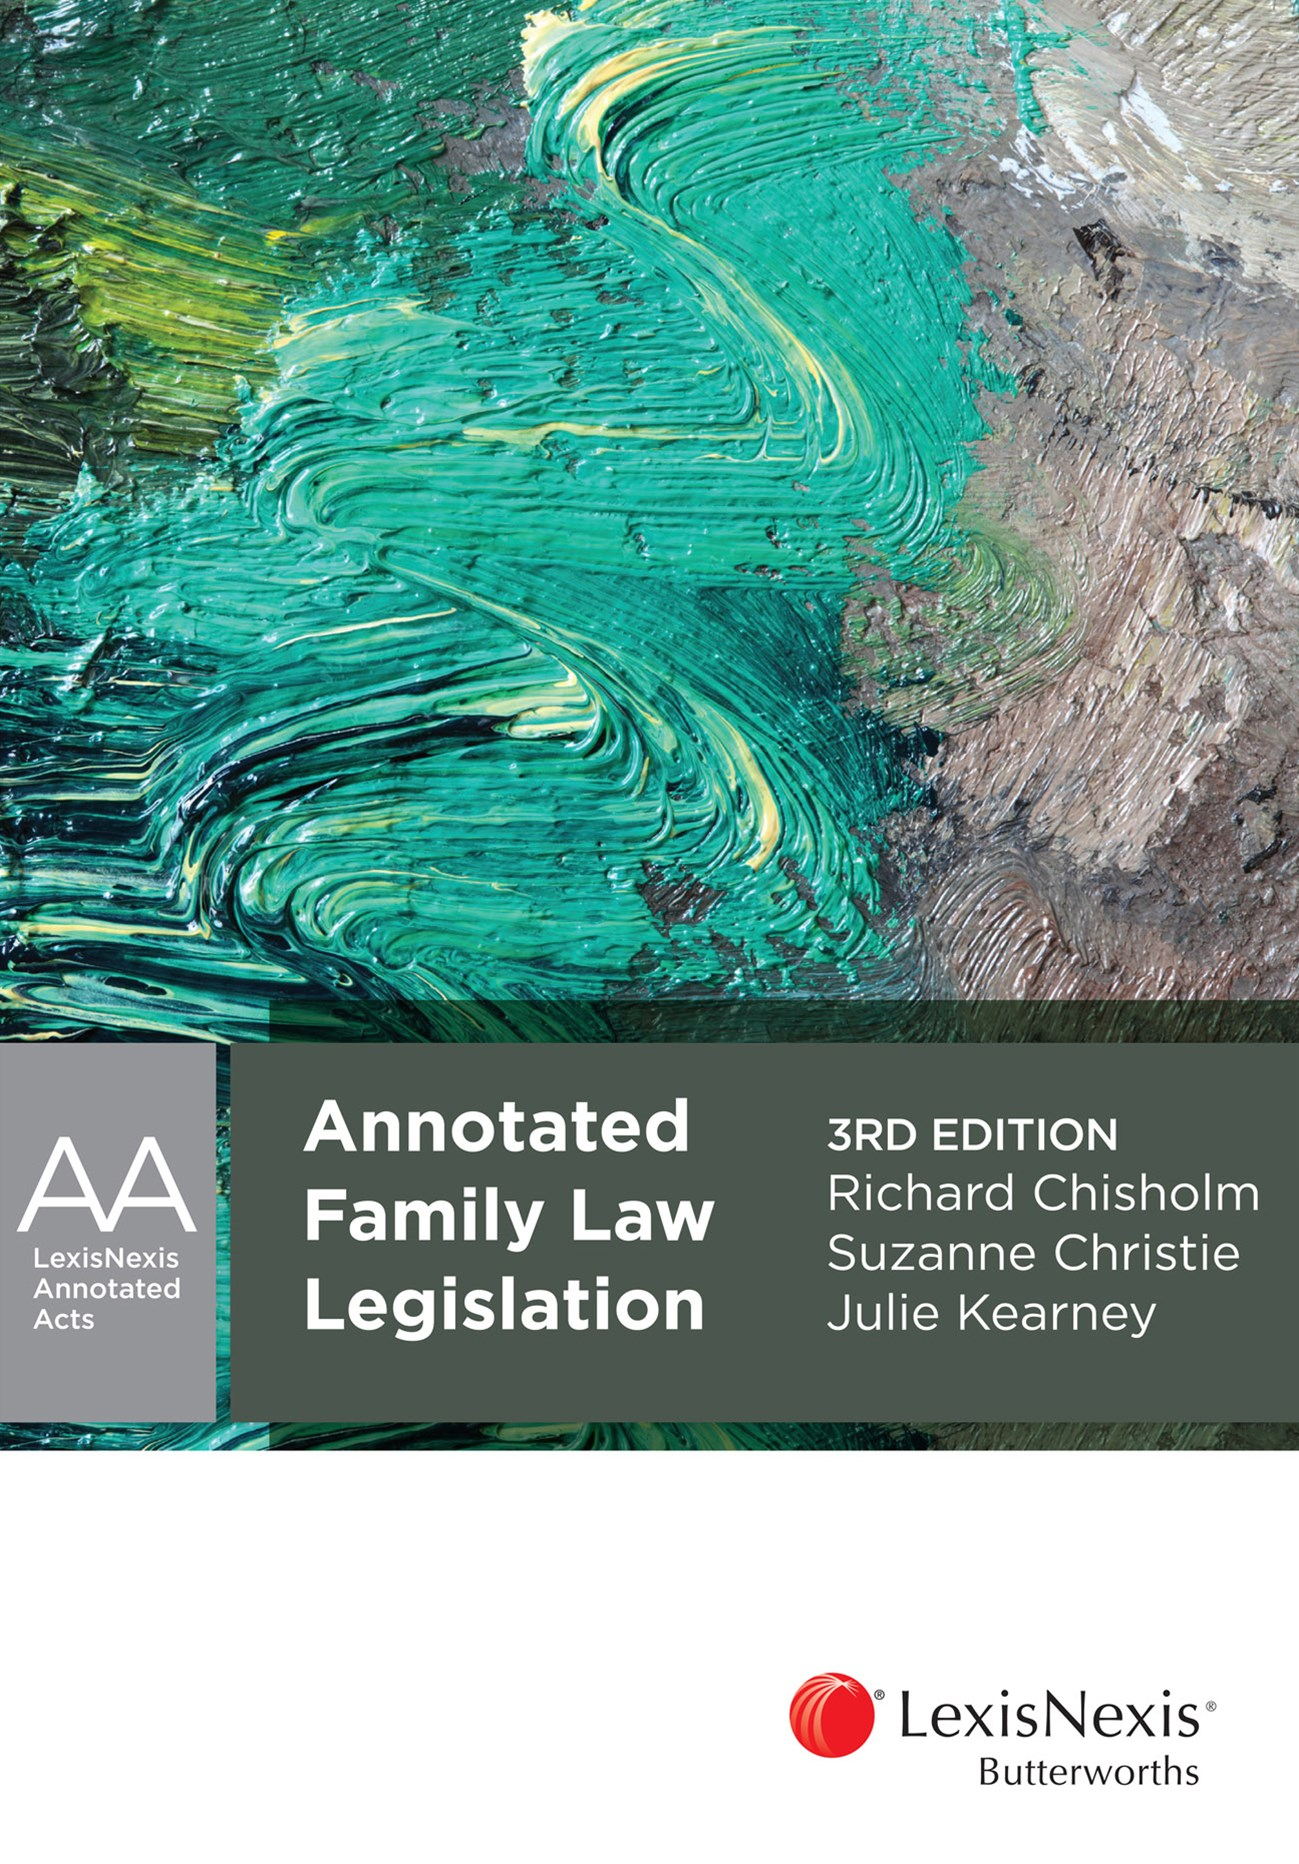 Annotated Family Law Legislation, 3rd edition